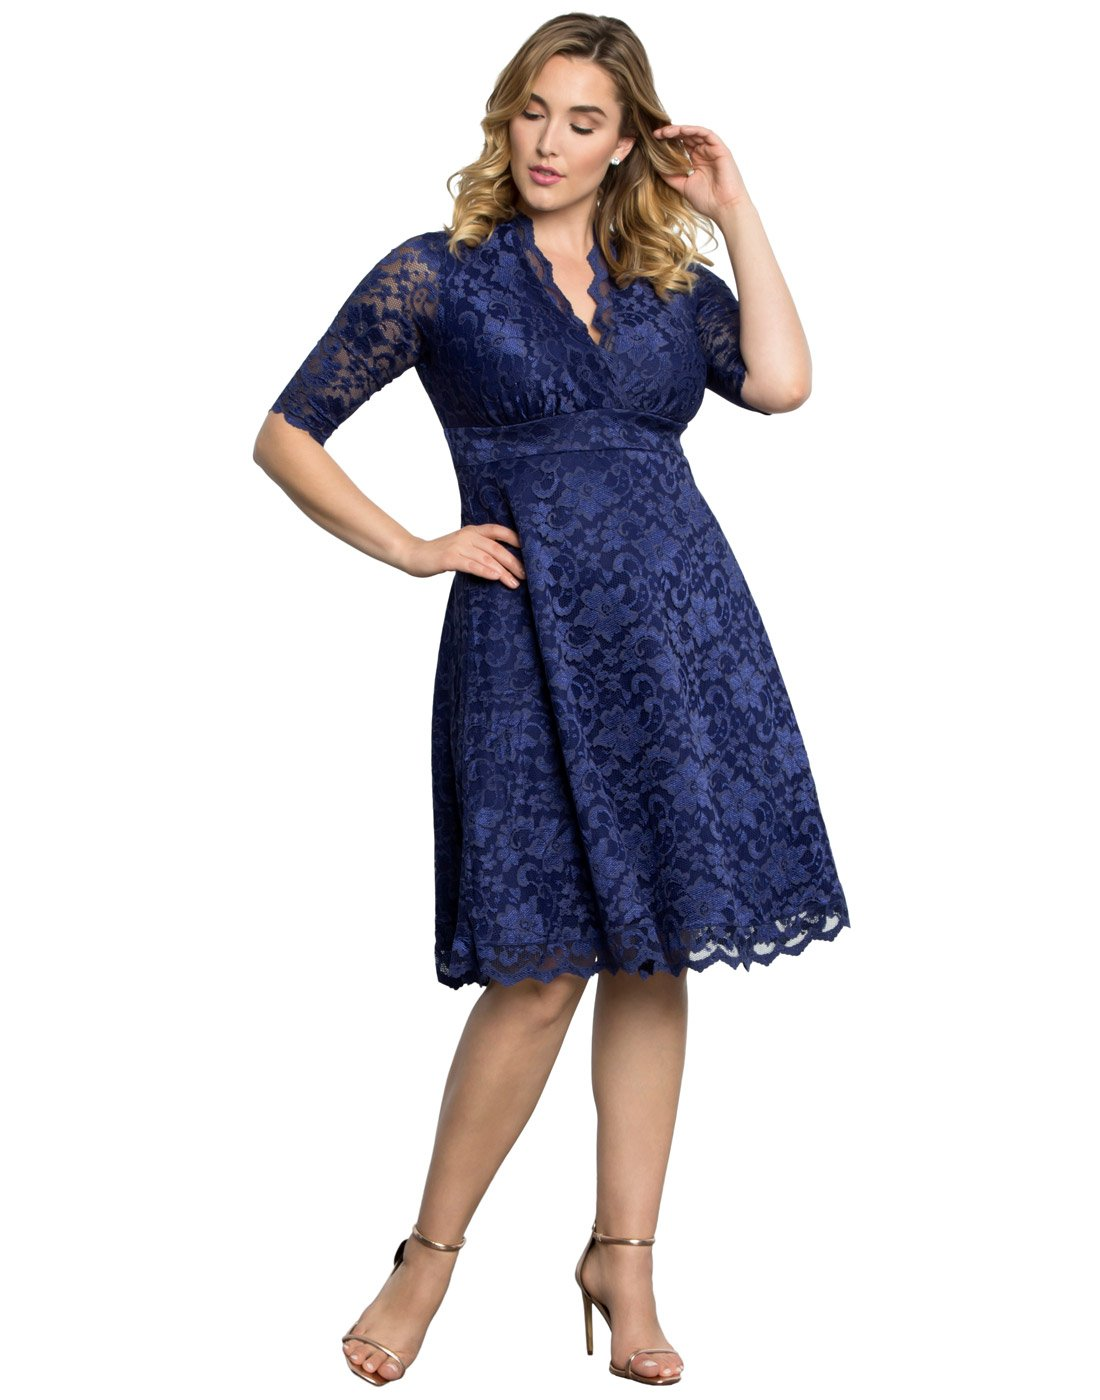 Kiyonna Women's Plus Size Mademoiselle Lace Dress 1X Sapphire Blue